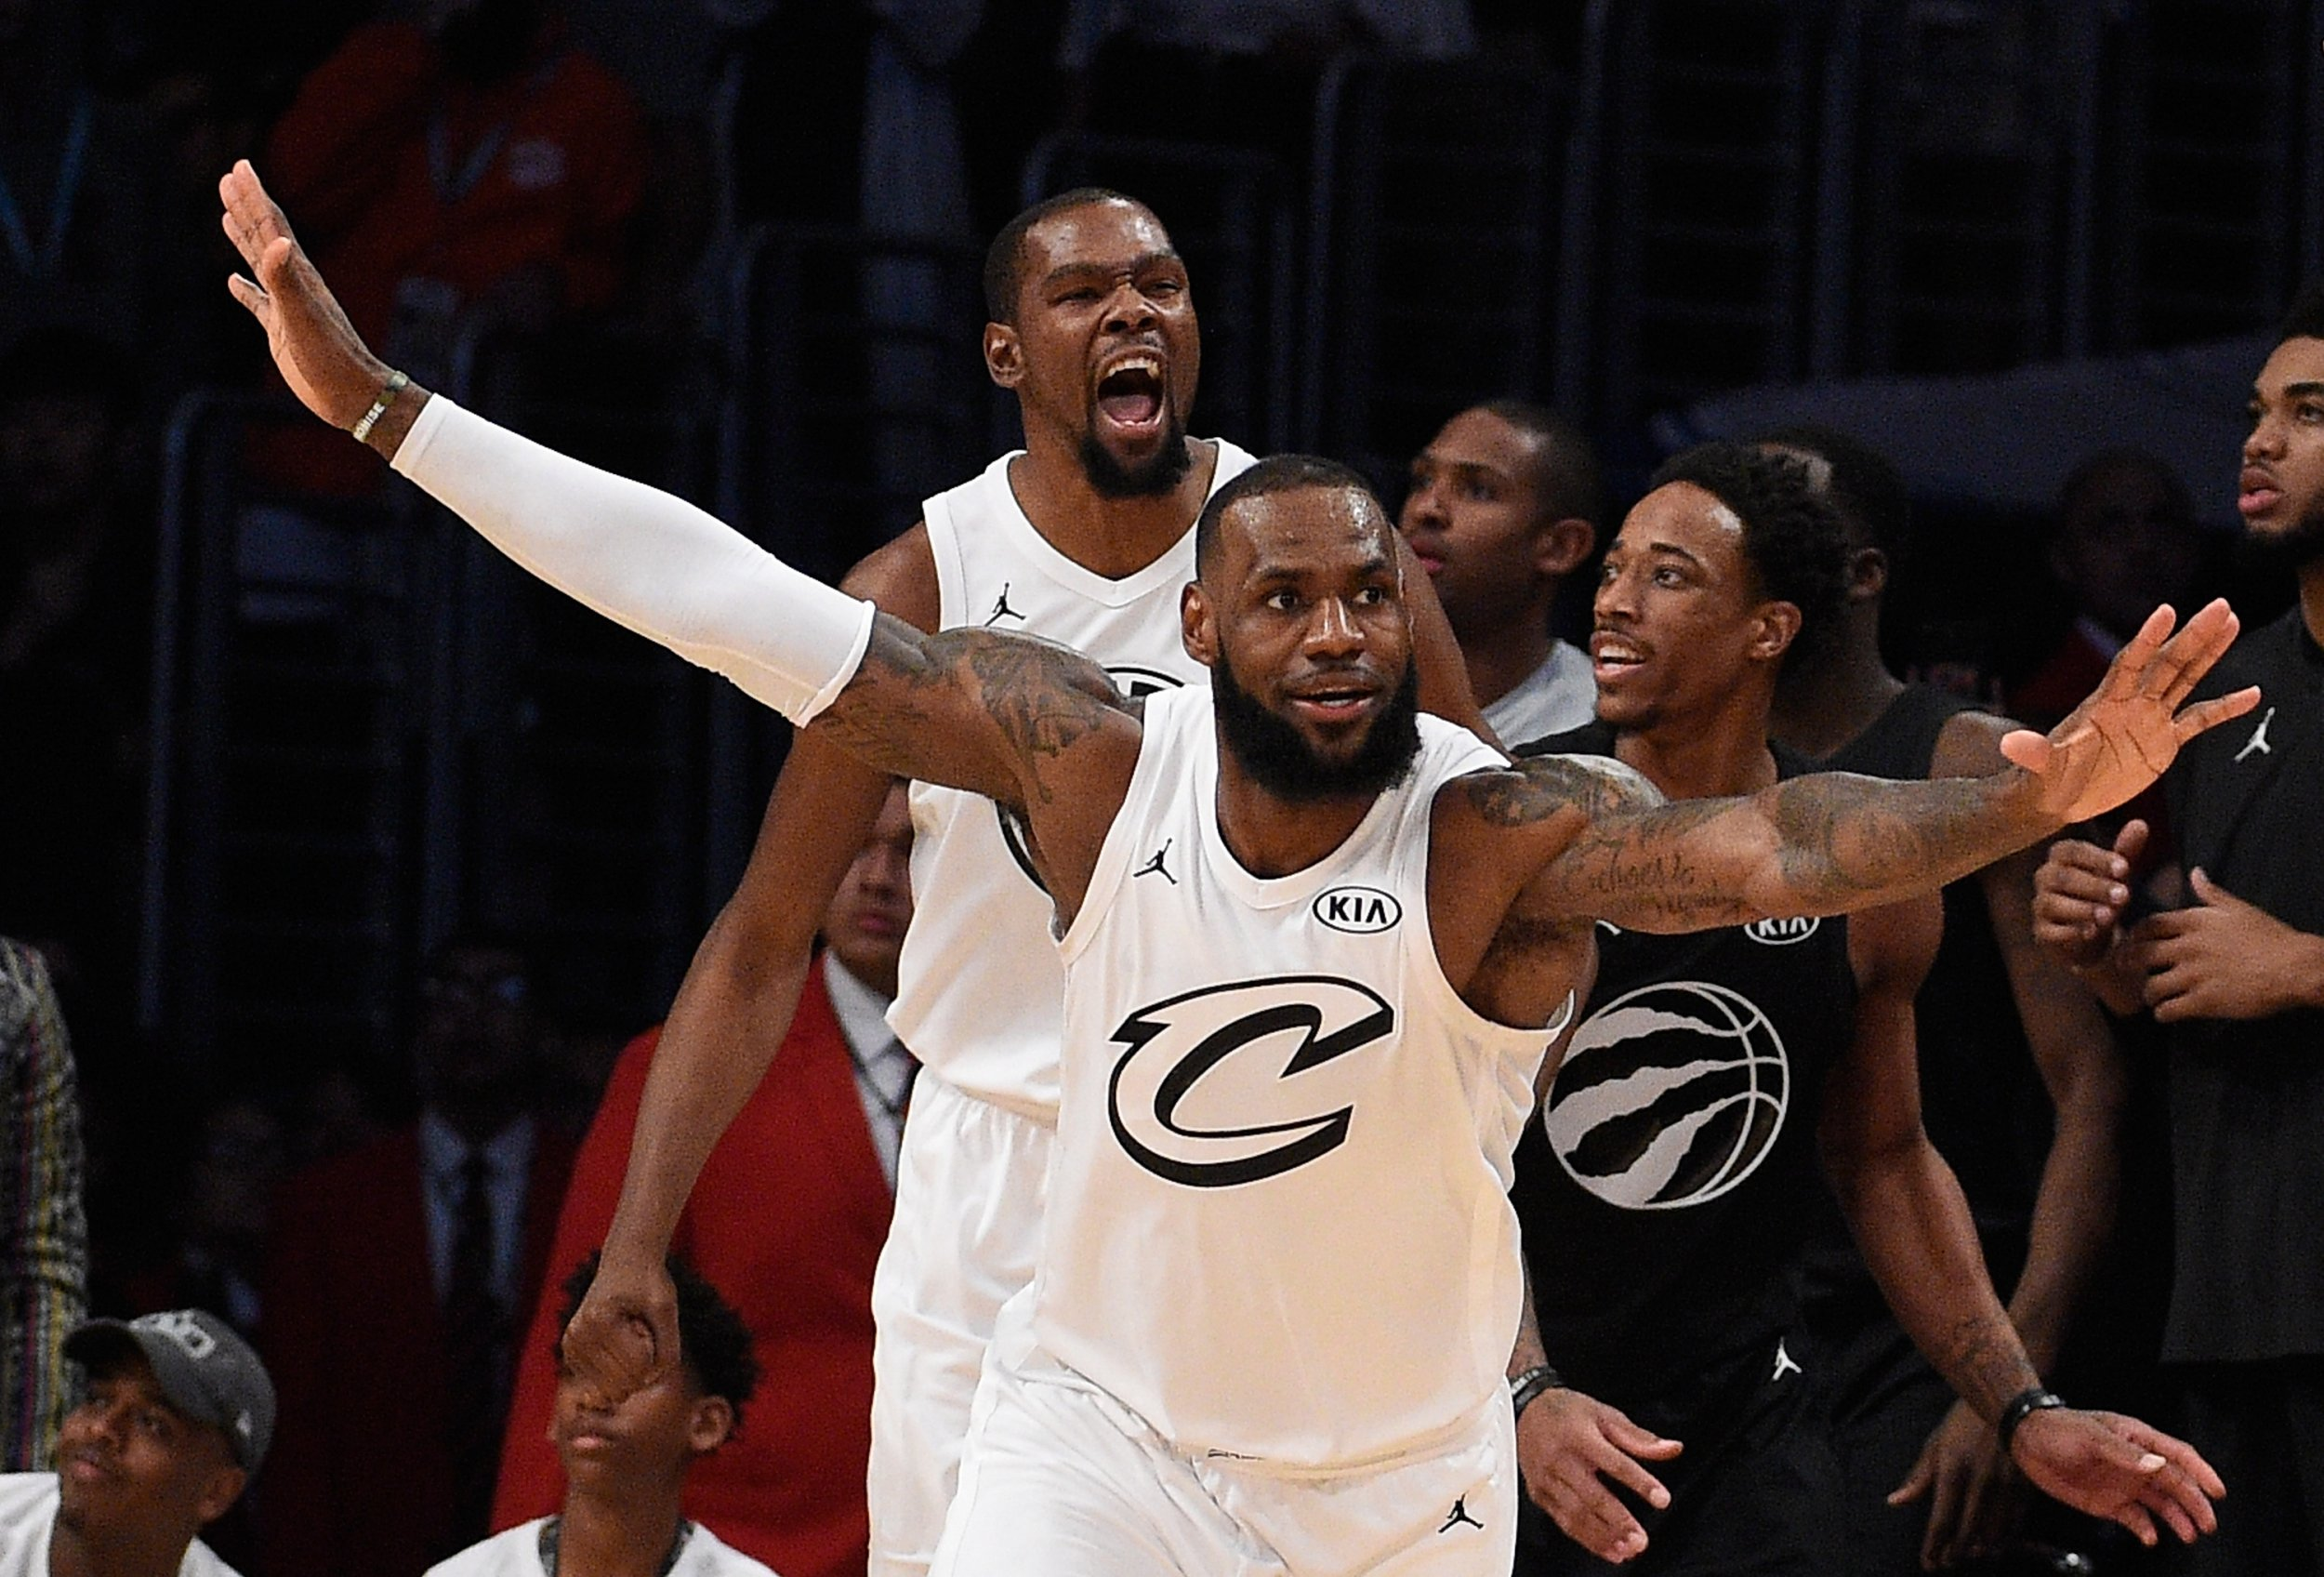 Nba All Star Game 2019 Live Stream Rosters Start Time And